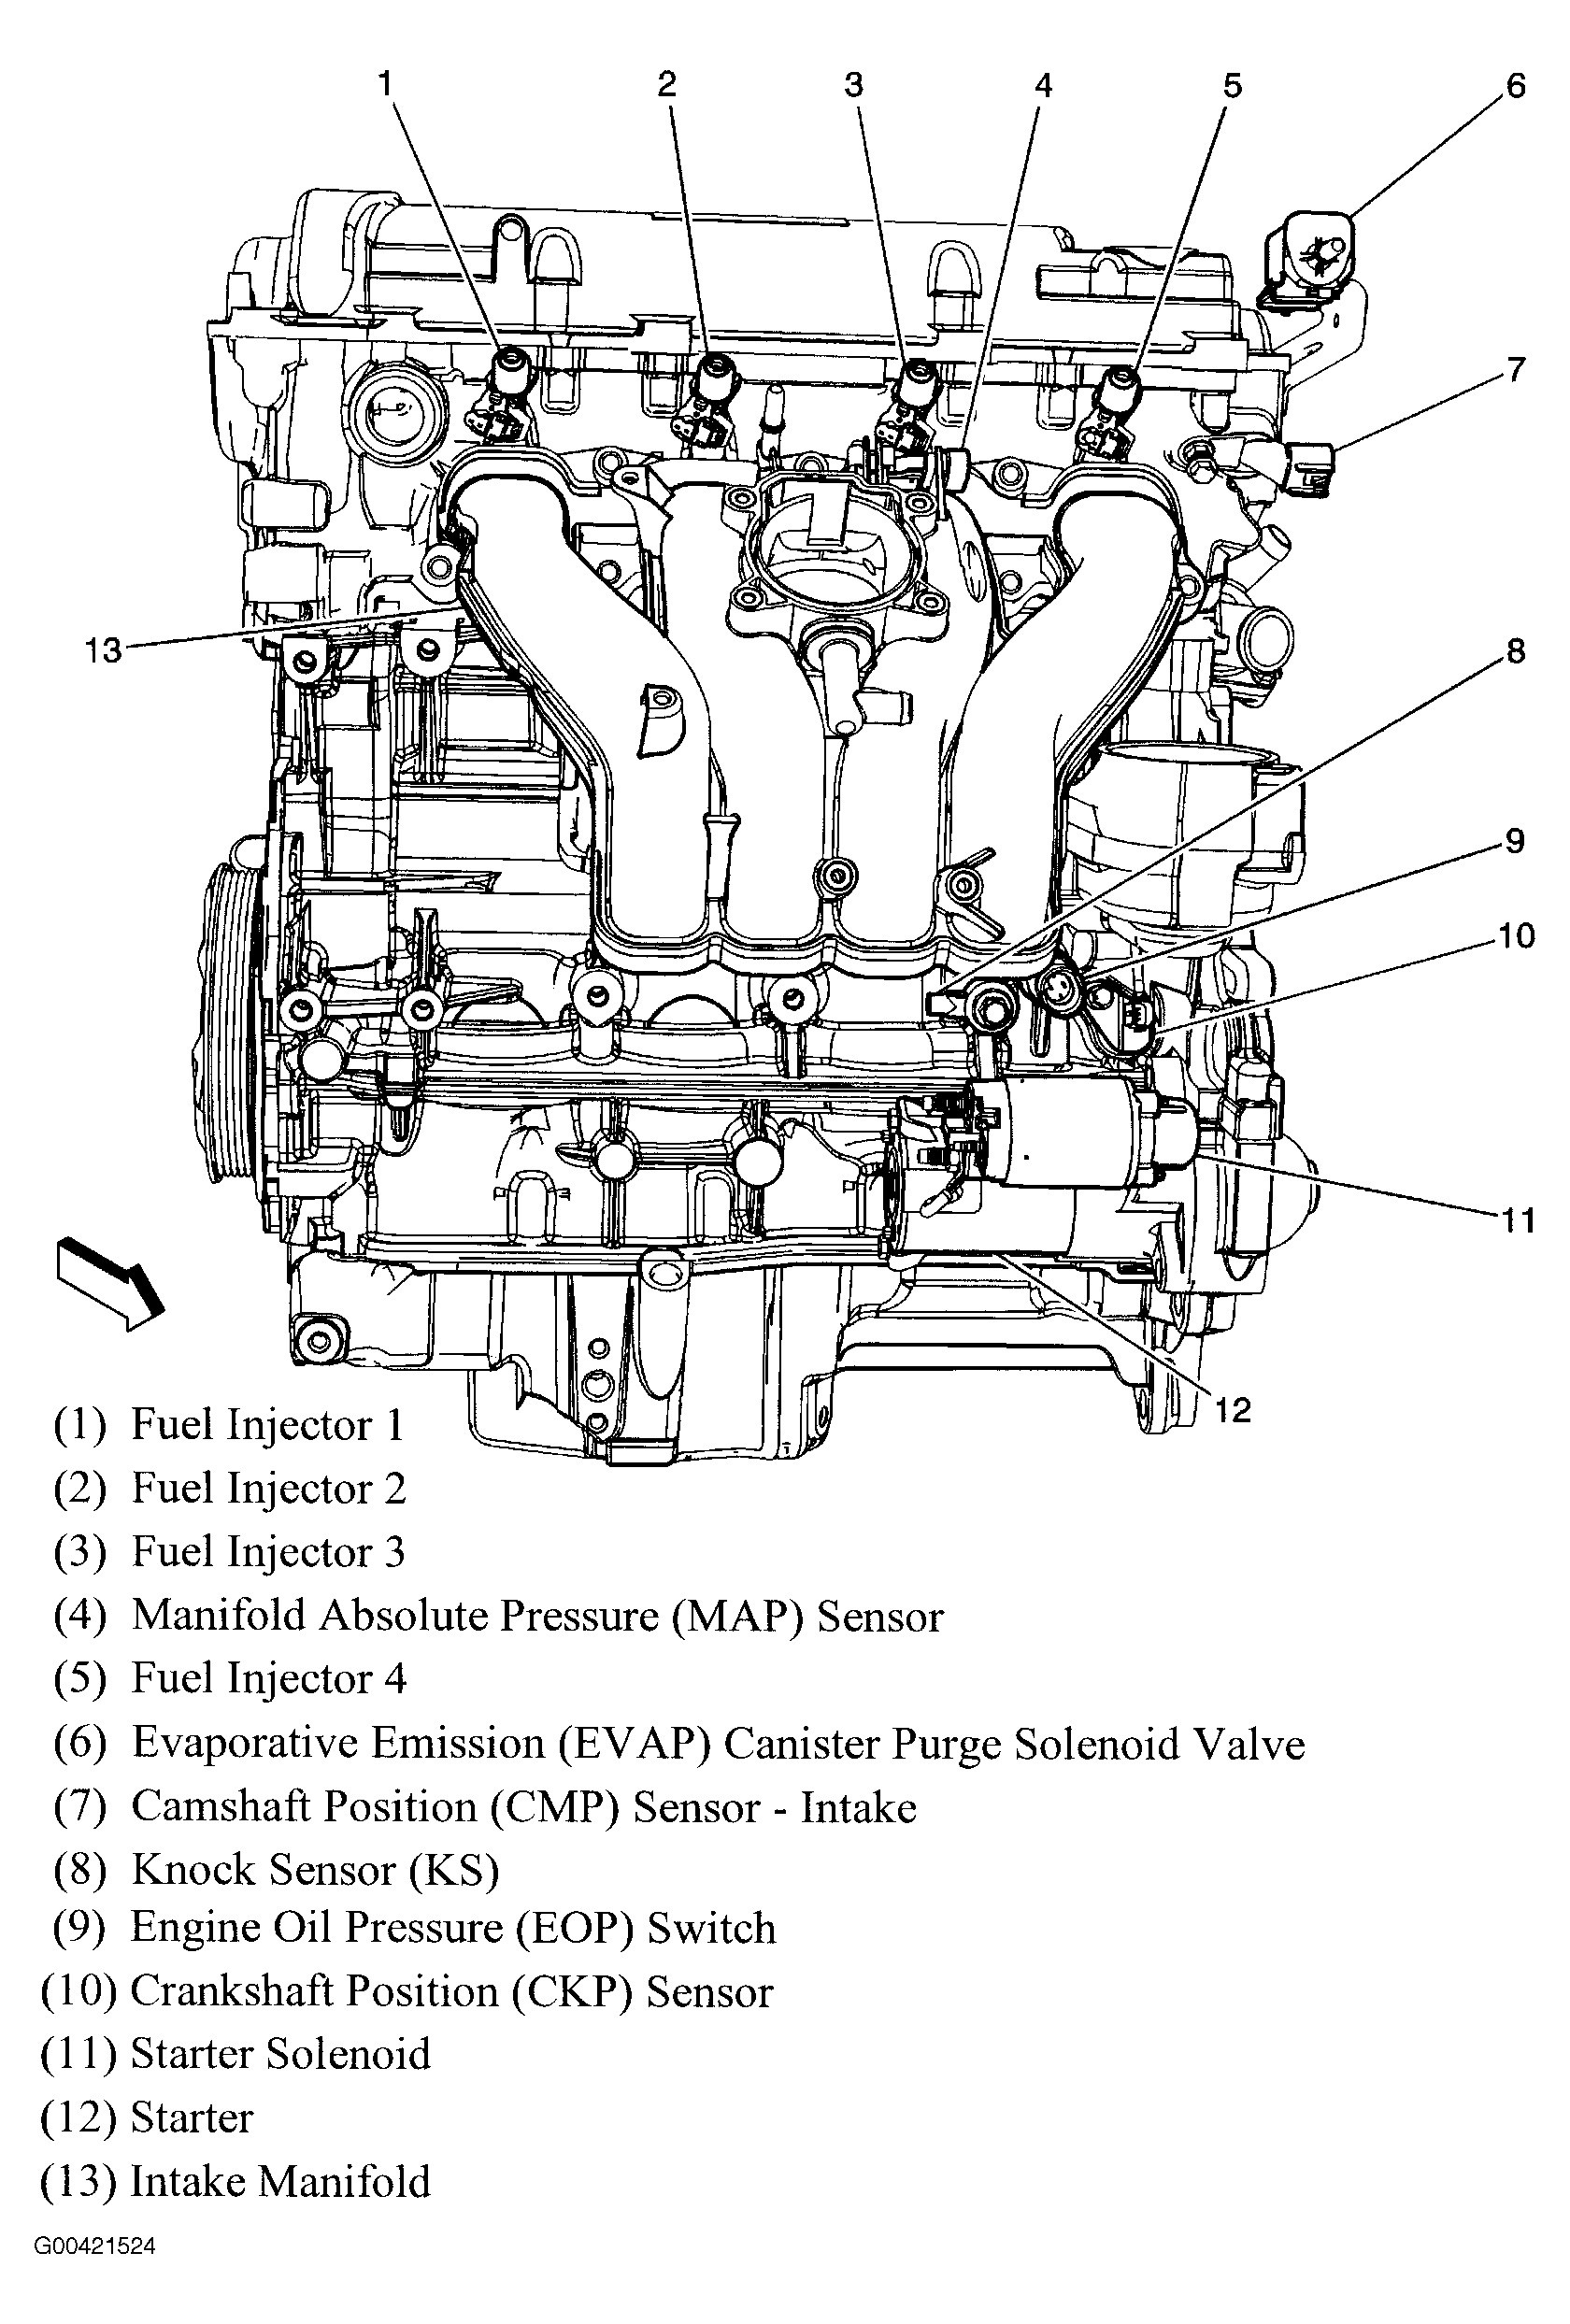 [SCHEMATICS_48IU]  AYNW_3854] Diagram Chevrolet Aveo Engine Diagram Diagram Base Website Engine  Diagram - CLIMATEDIAGRAMS.LANA-DELREY.FR | 2010 Chevy Traverse Engine Diagram |  | lana-delrey.fr